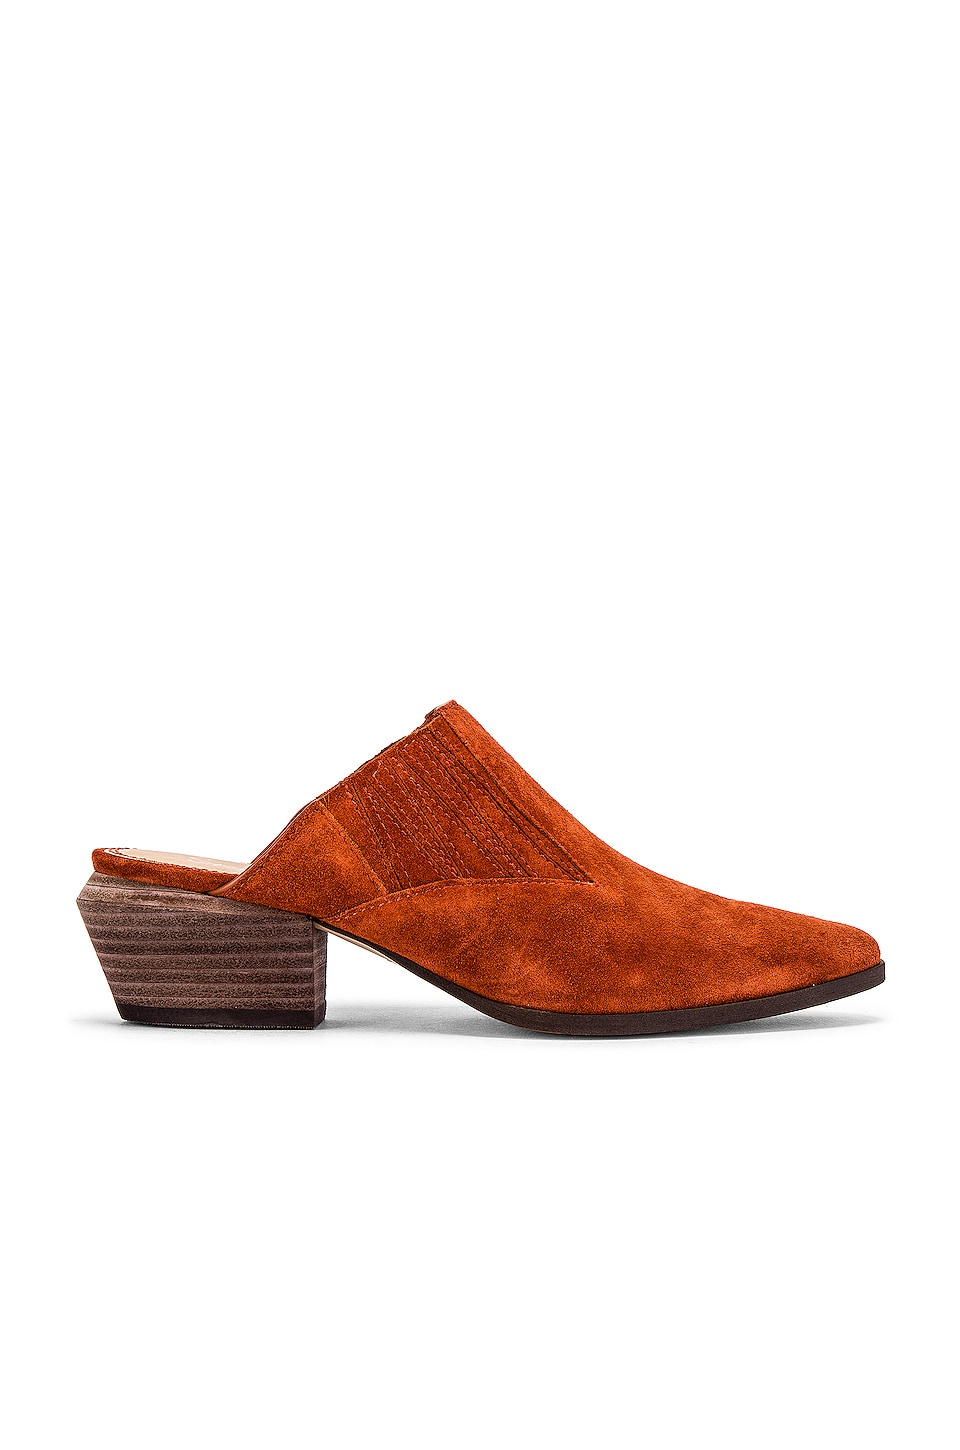 Splendid Hailee Mule in Burnt Umber